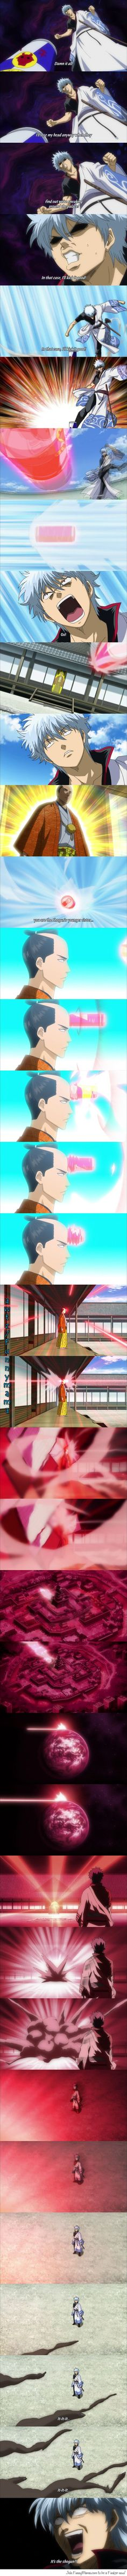 I feel like the shogun is the most tragic character in this series